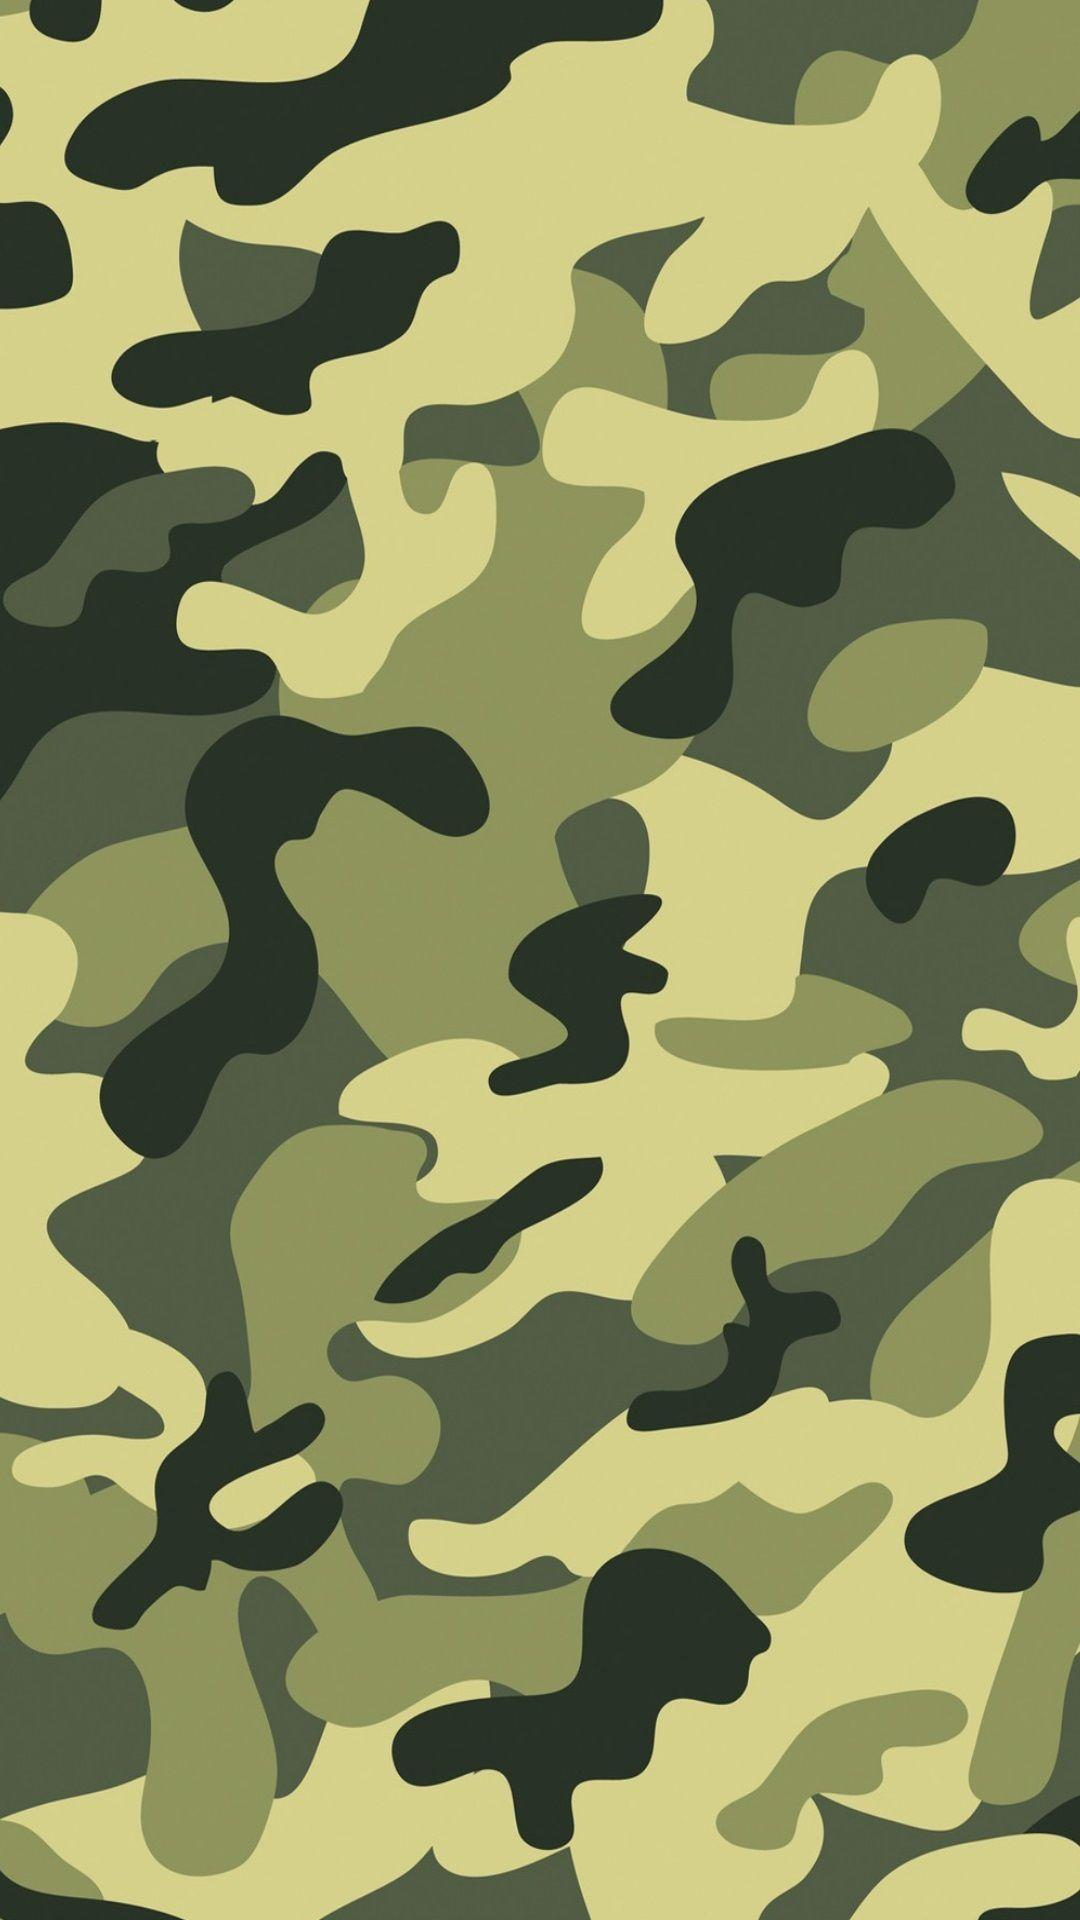 wallpapers army green camo camouflage iphone